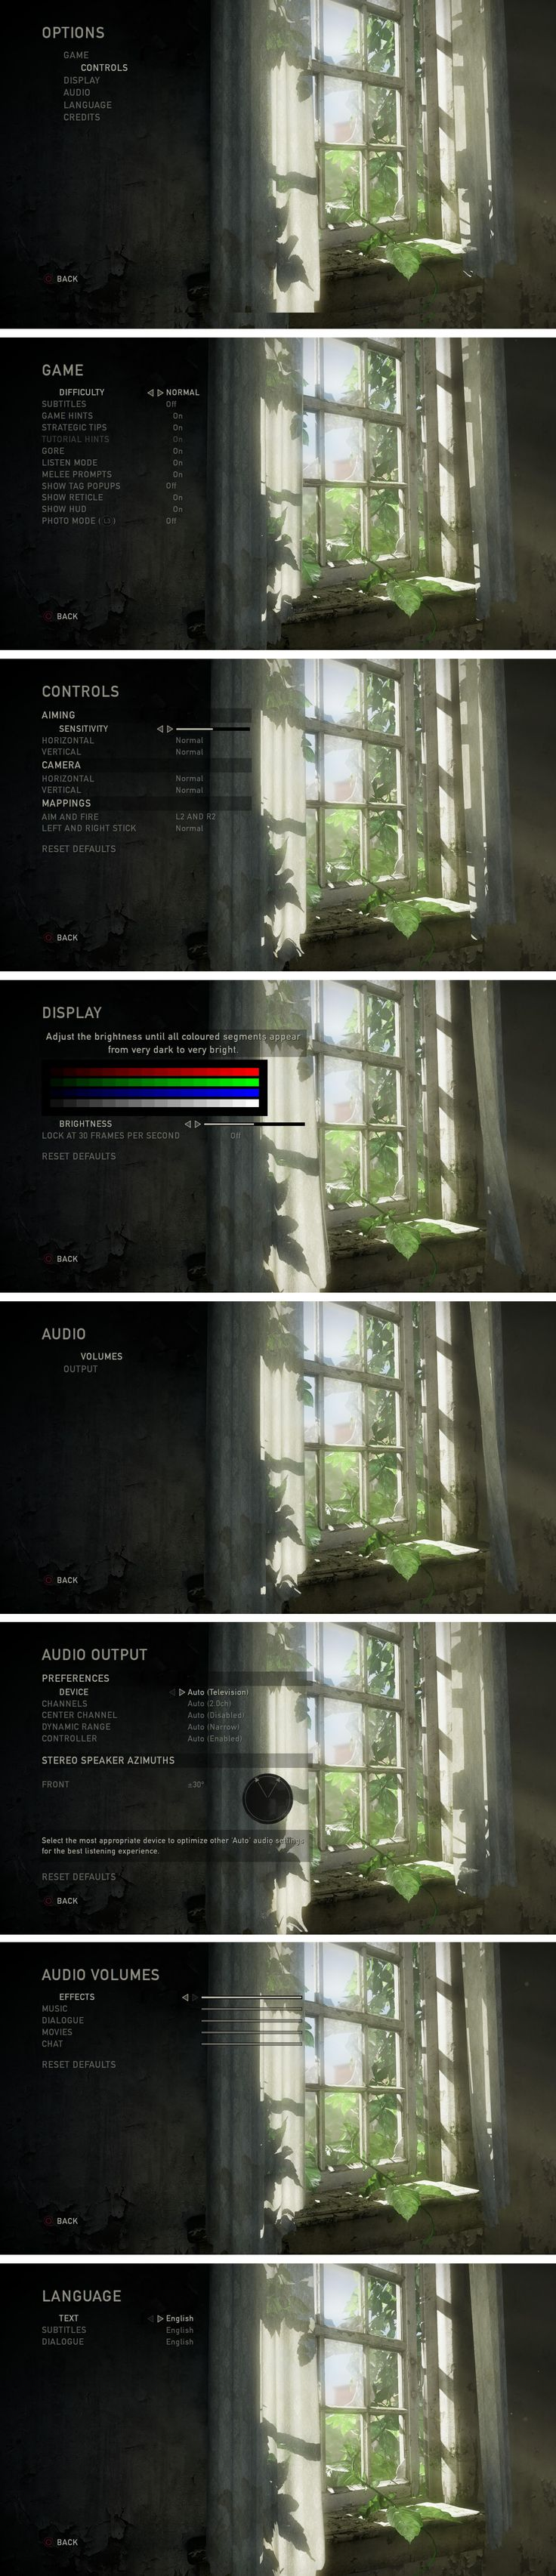 """Settings UI (User Interface) for the game """"The Last of Us"""" Copyright Naughty Dog – Screenshot taken on PS4 Console by Pinterest user: @fabianzaf"""